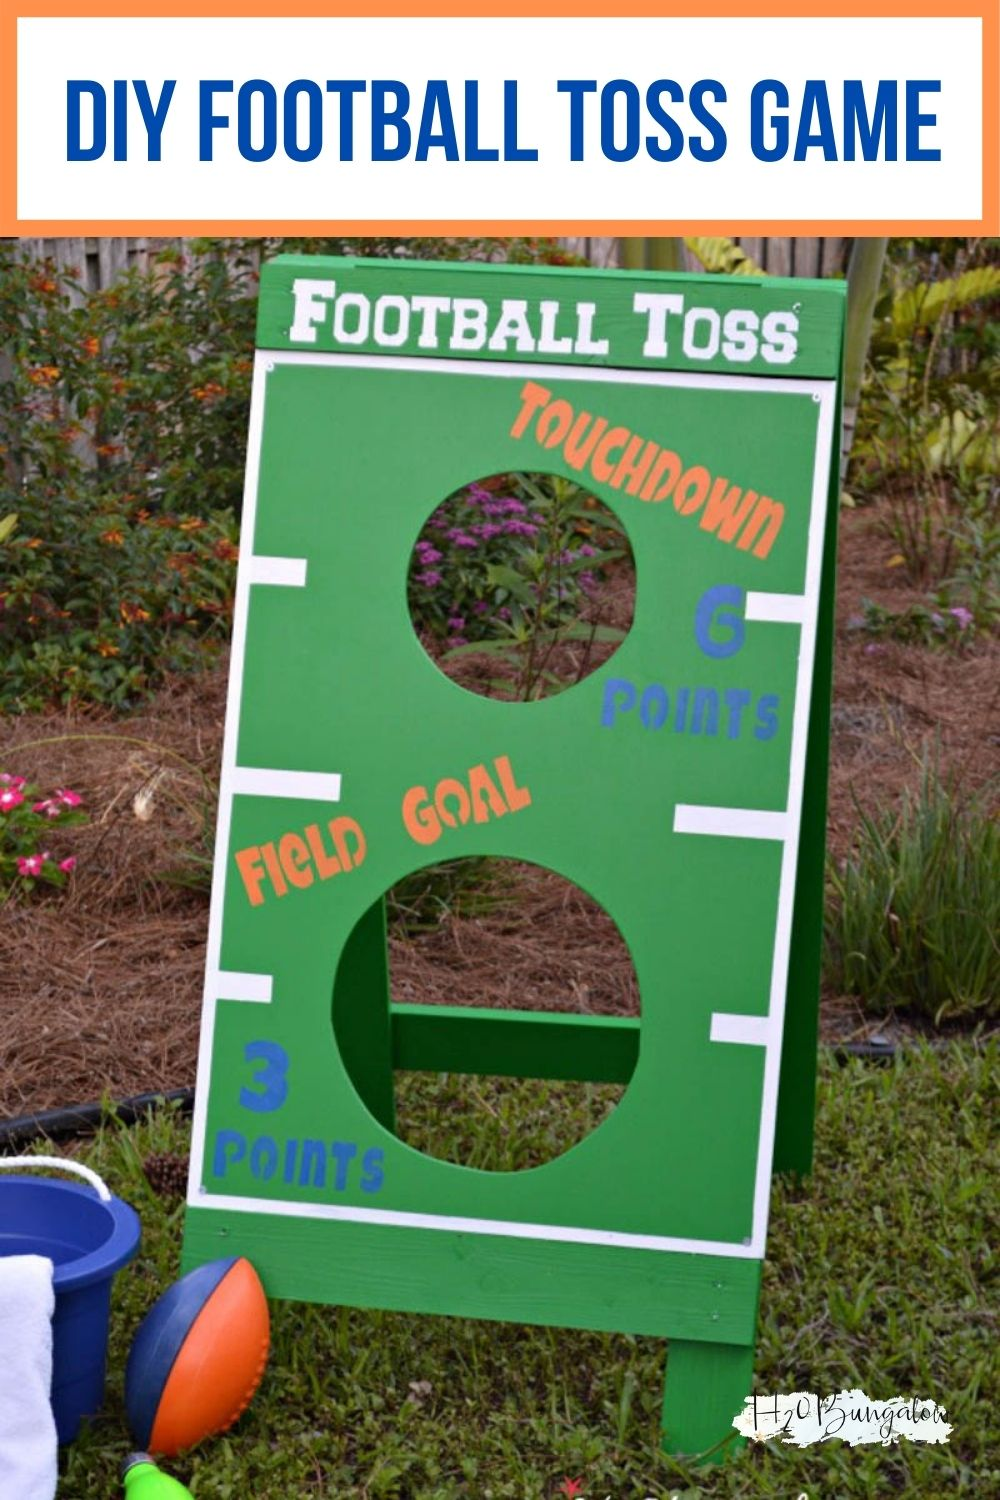 DIY football toss game with text overlay